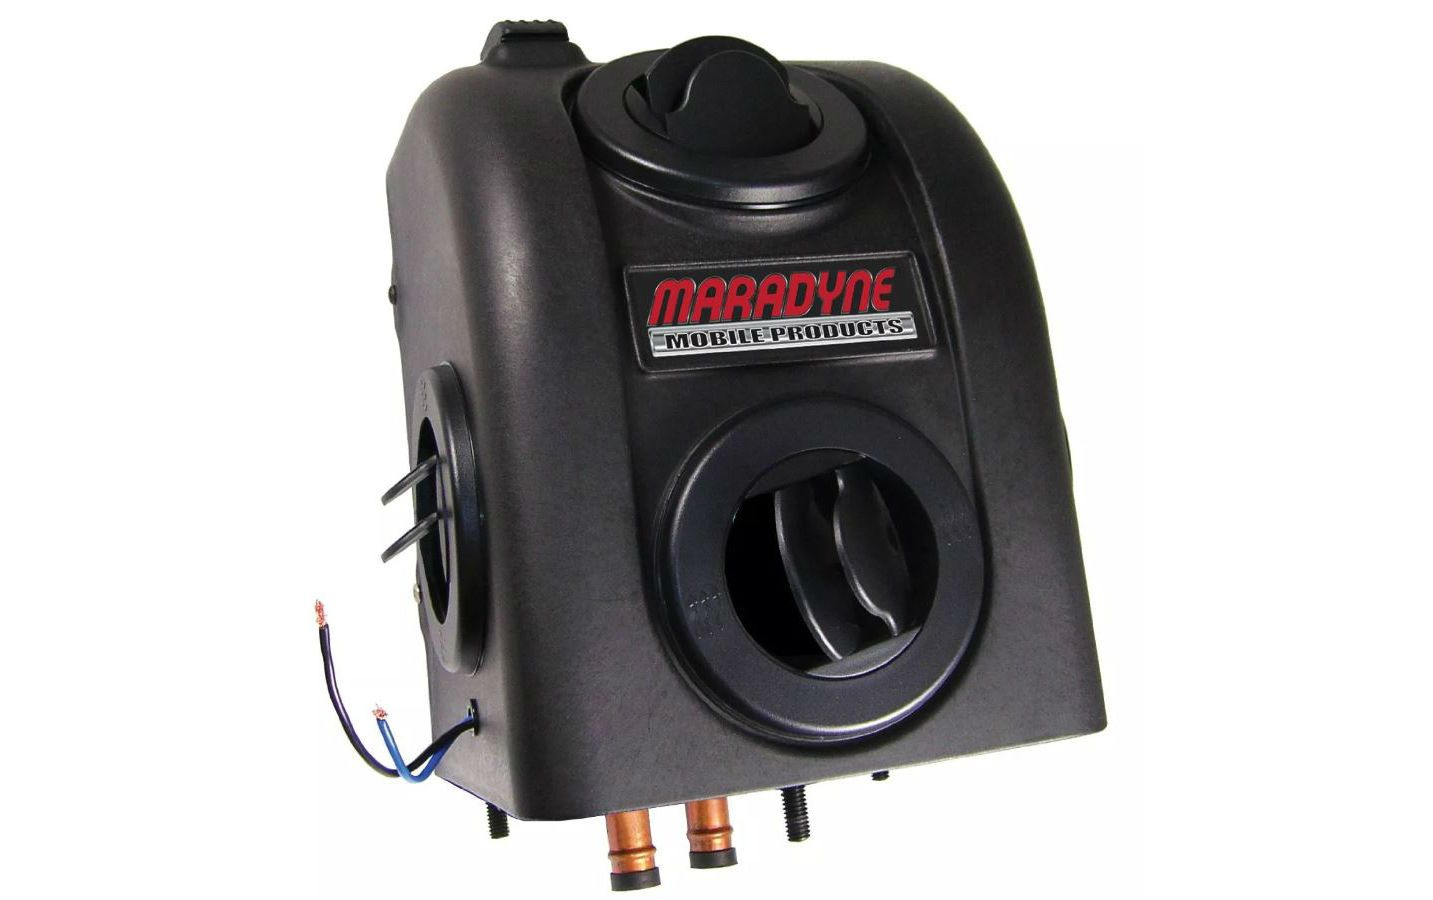 A Maradyne aftermarket replacement car heater.